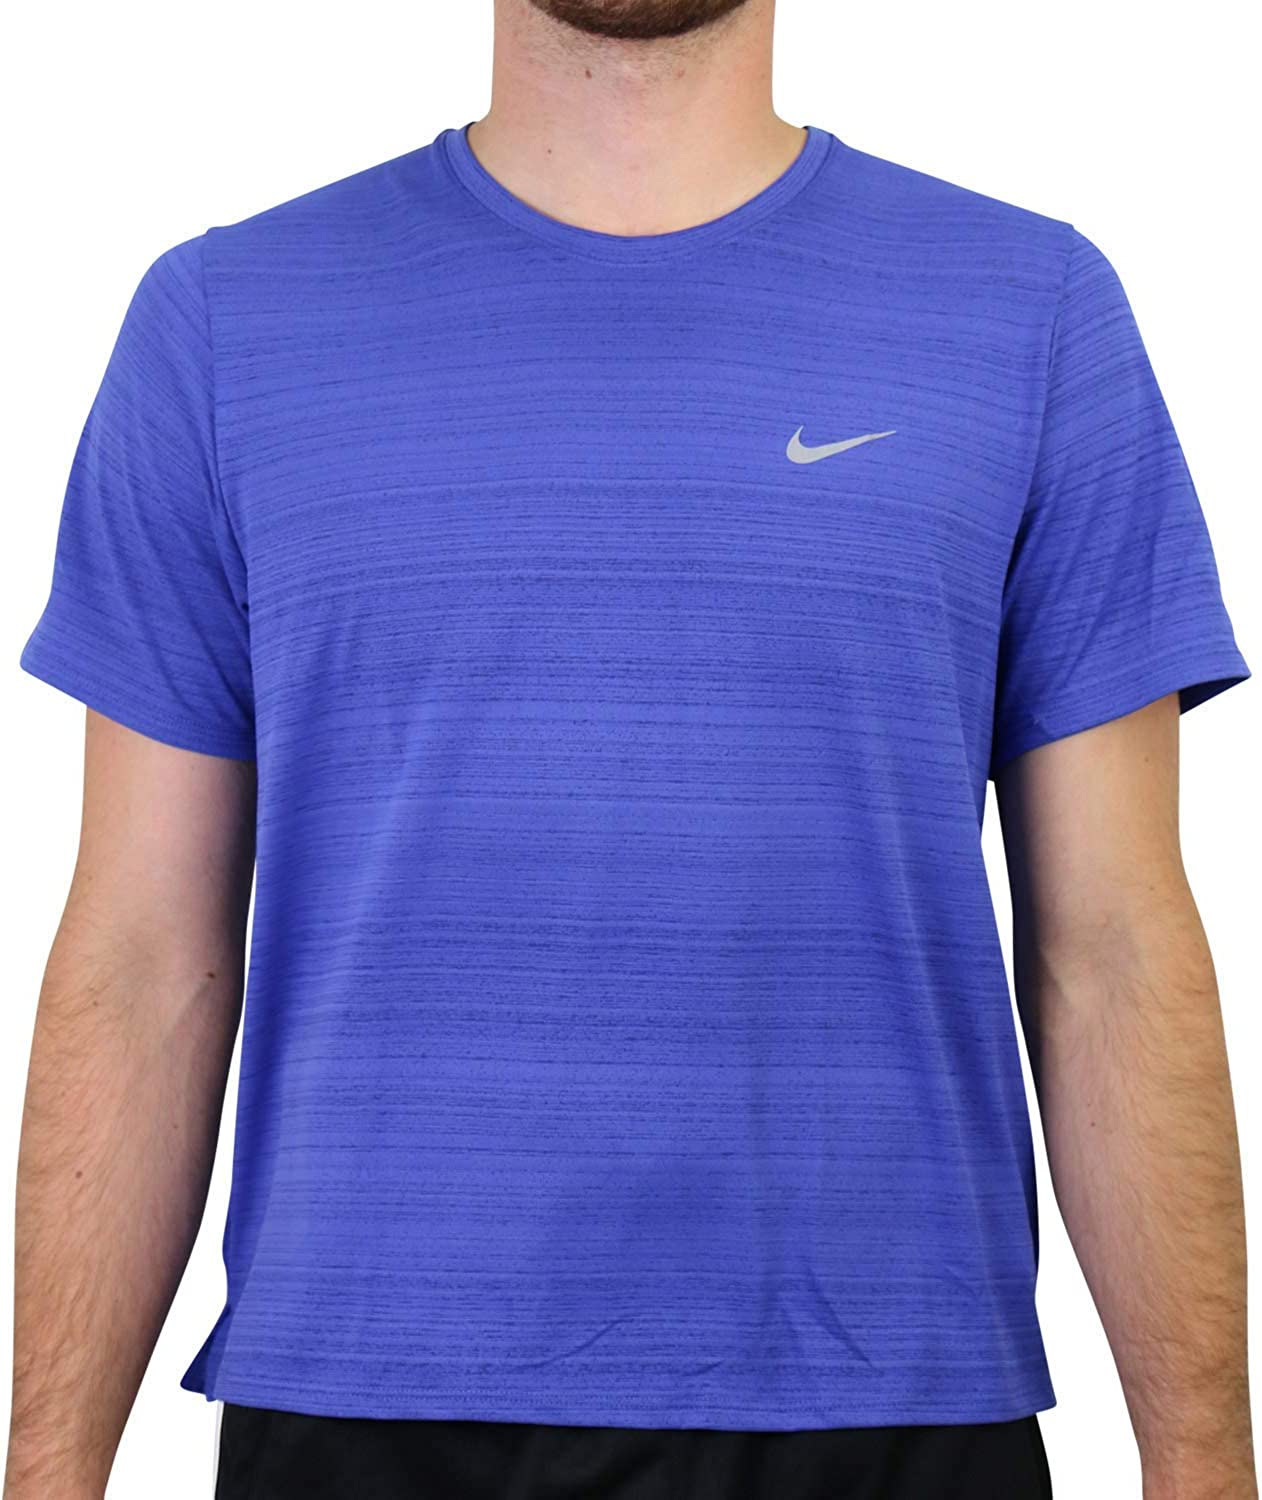 Nike Men's Dri-Fit Miler Short Super beauty low-pricing product restock quality top Shirt Sleeve Running